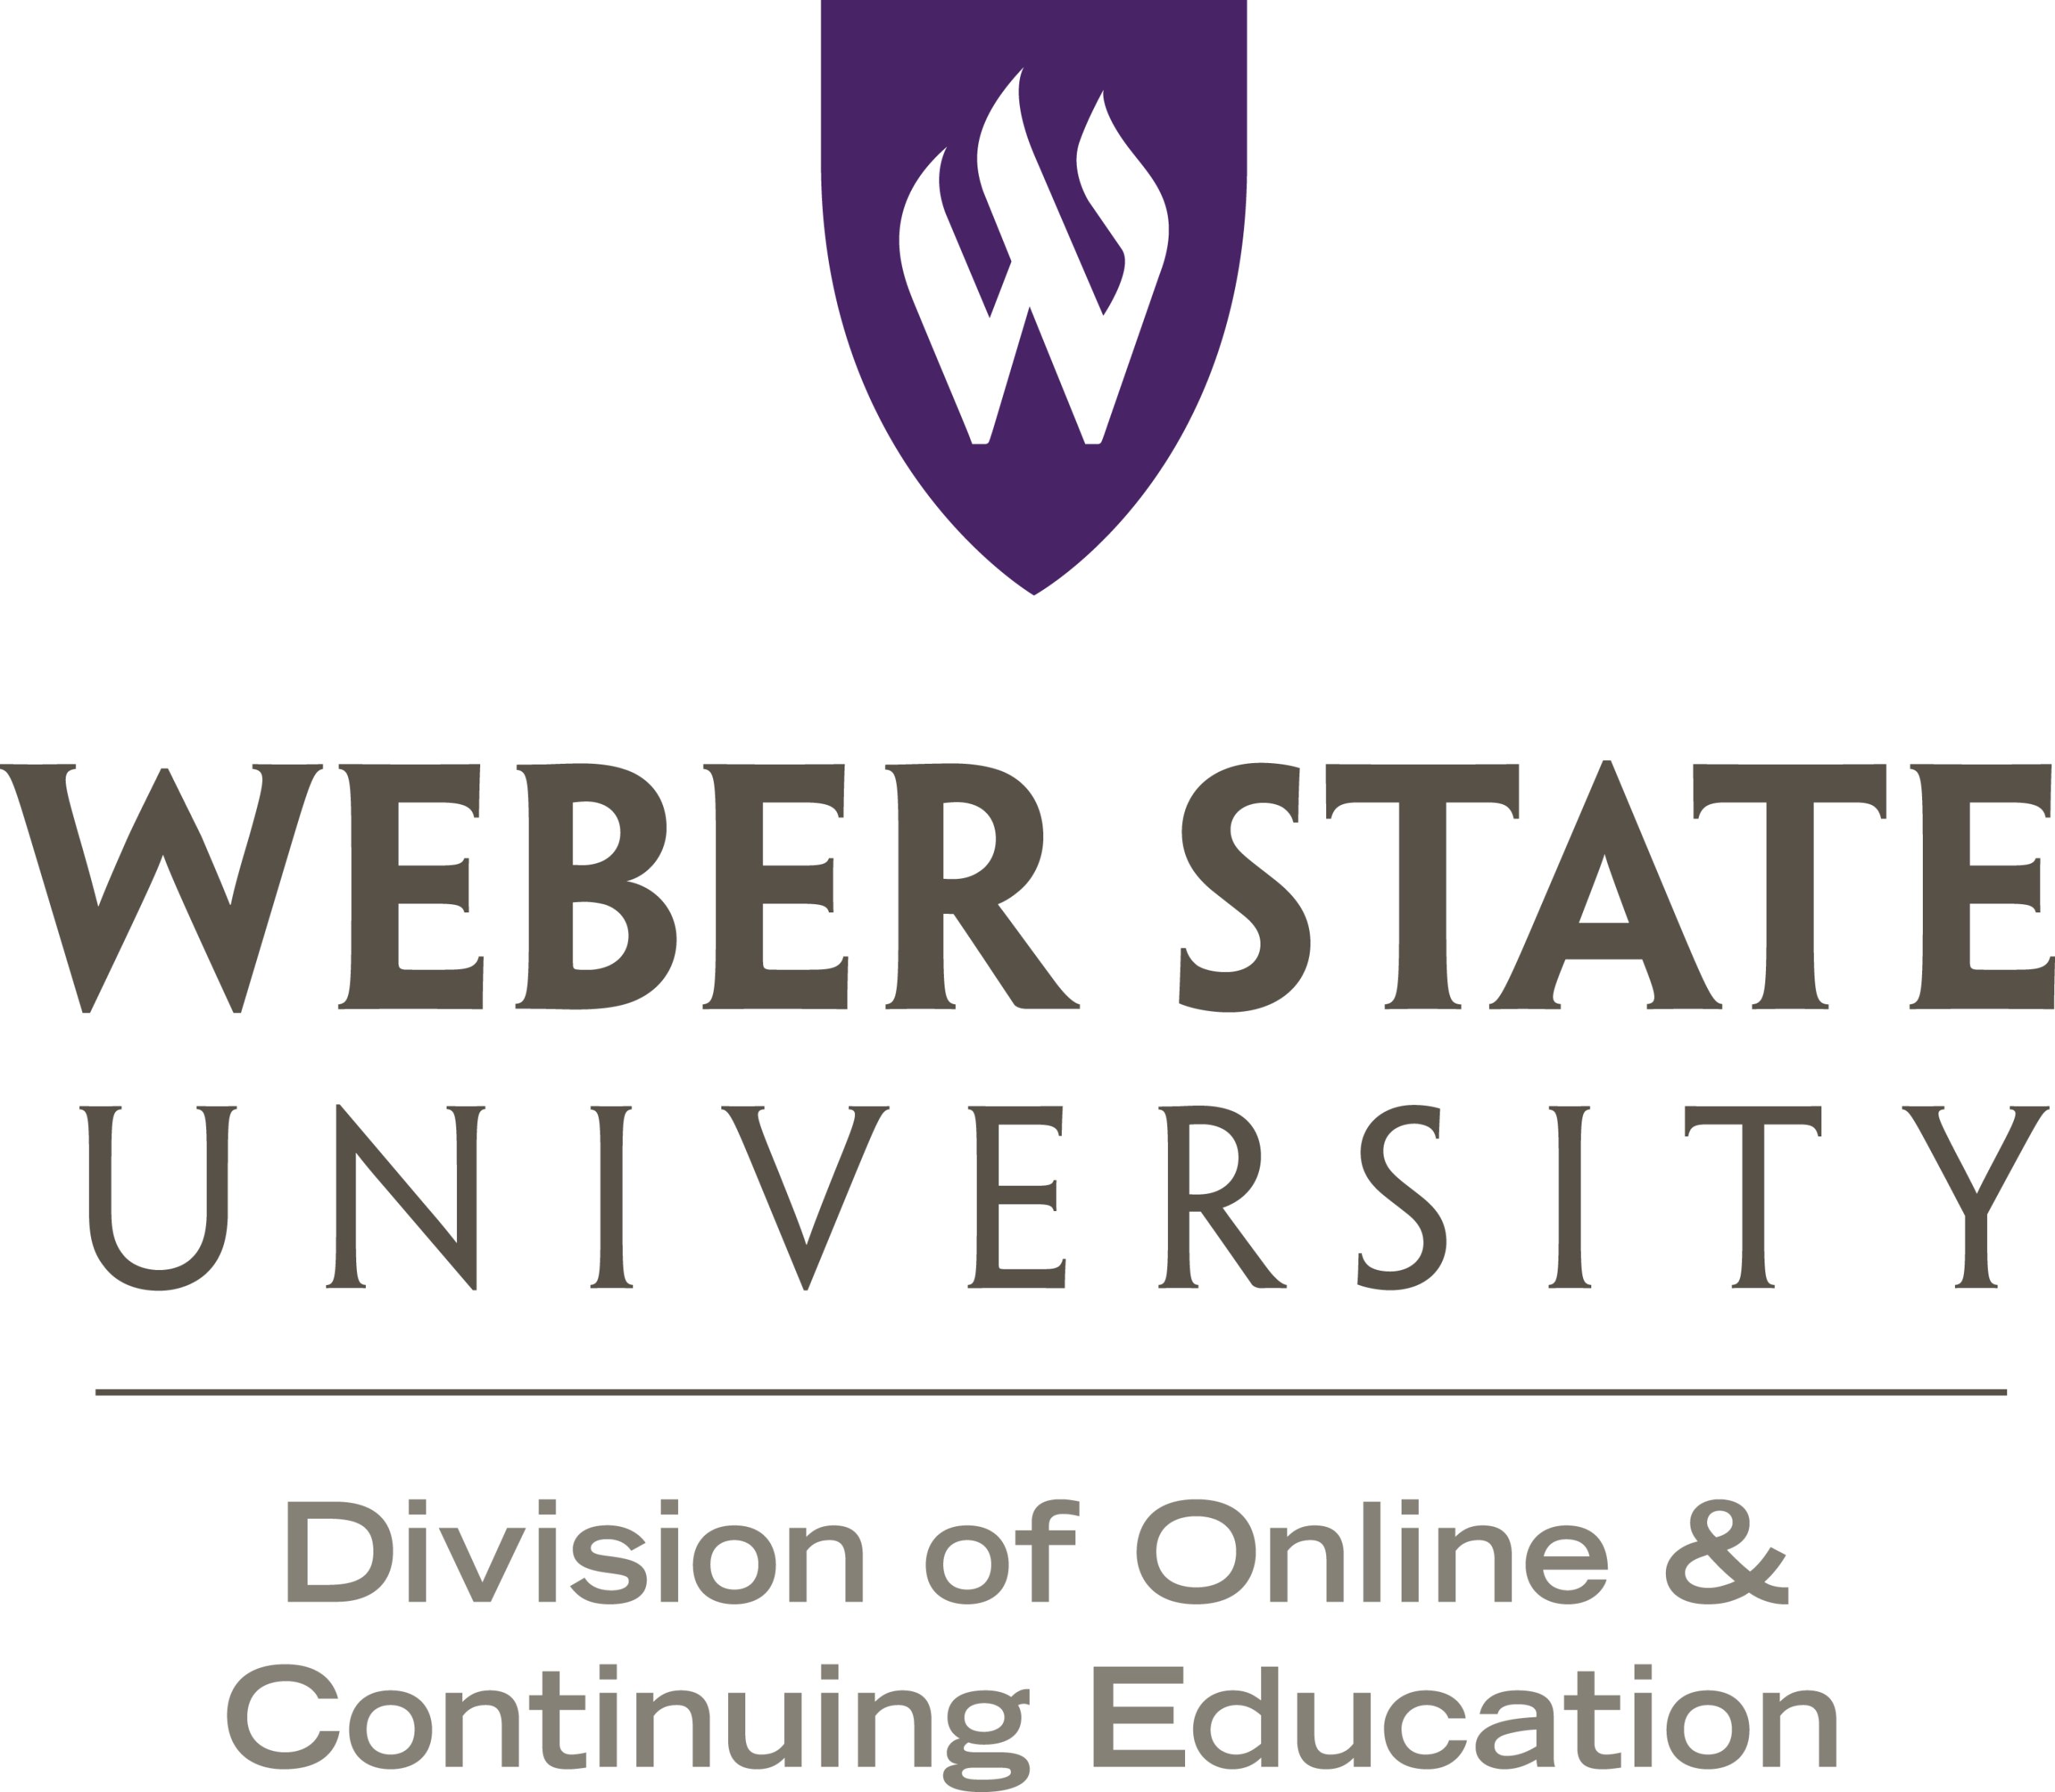 Weber State University Division of Online & Continuing Education